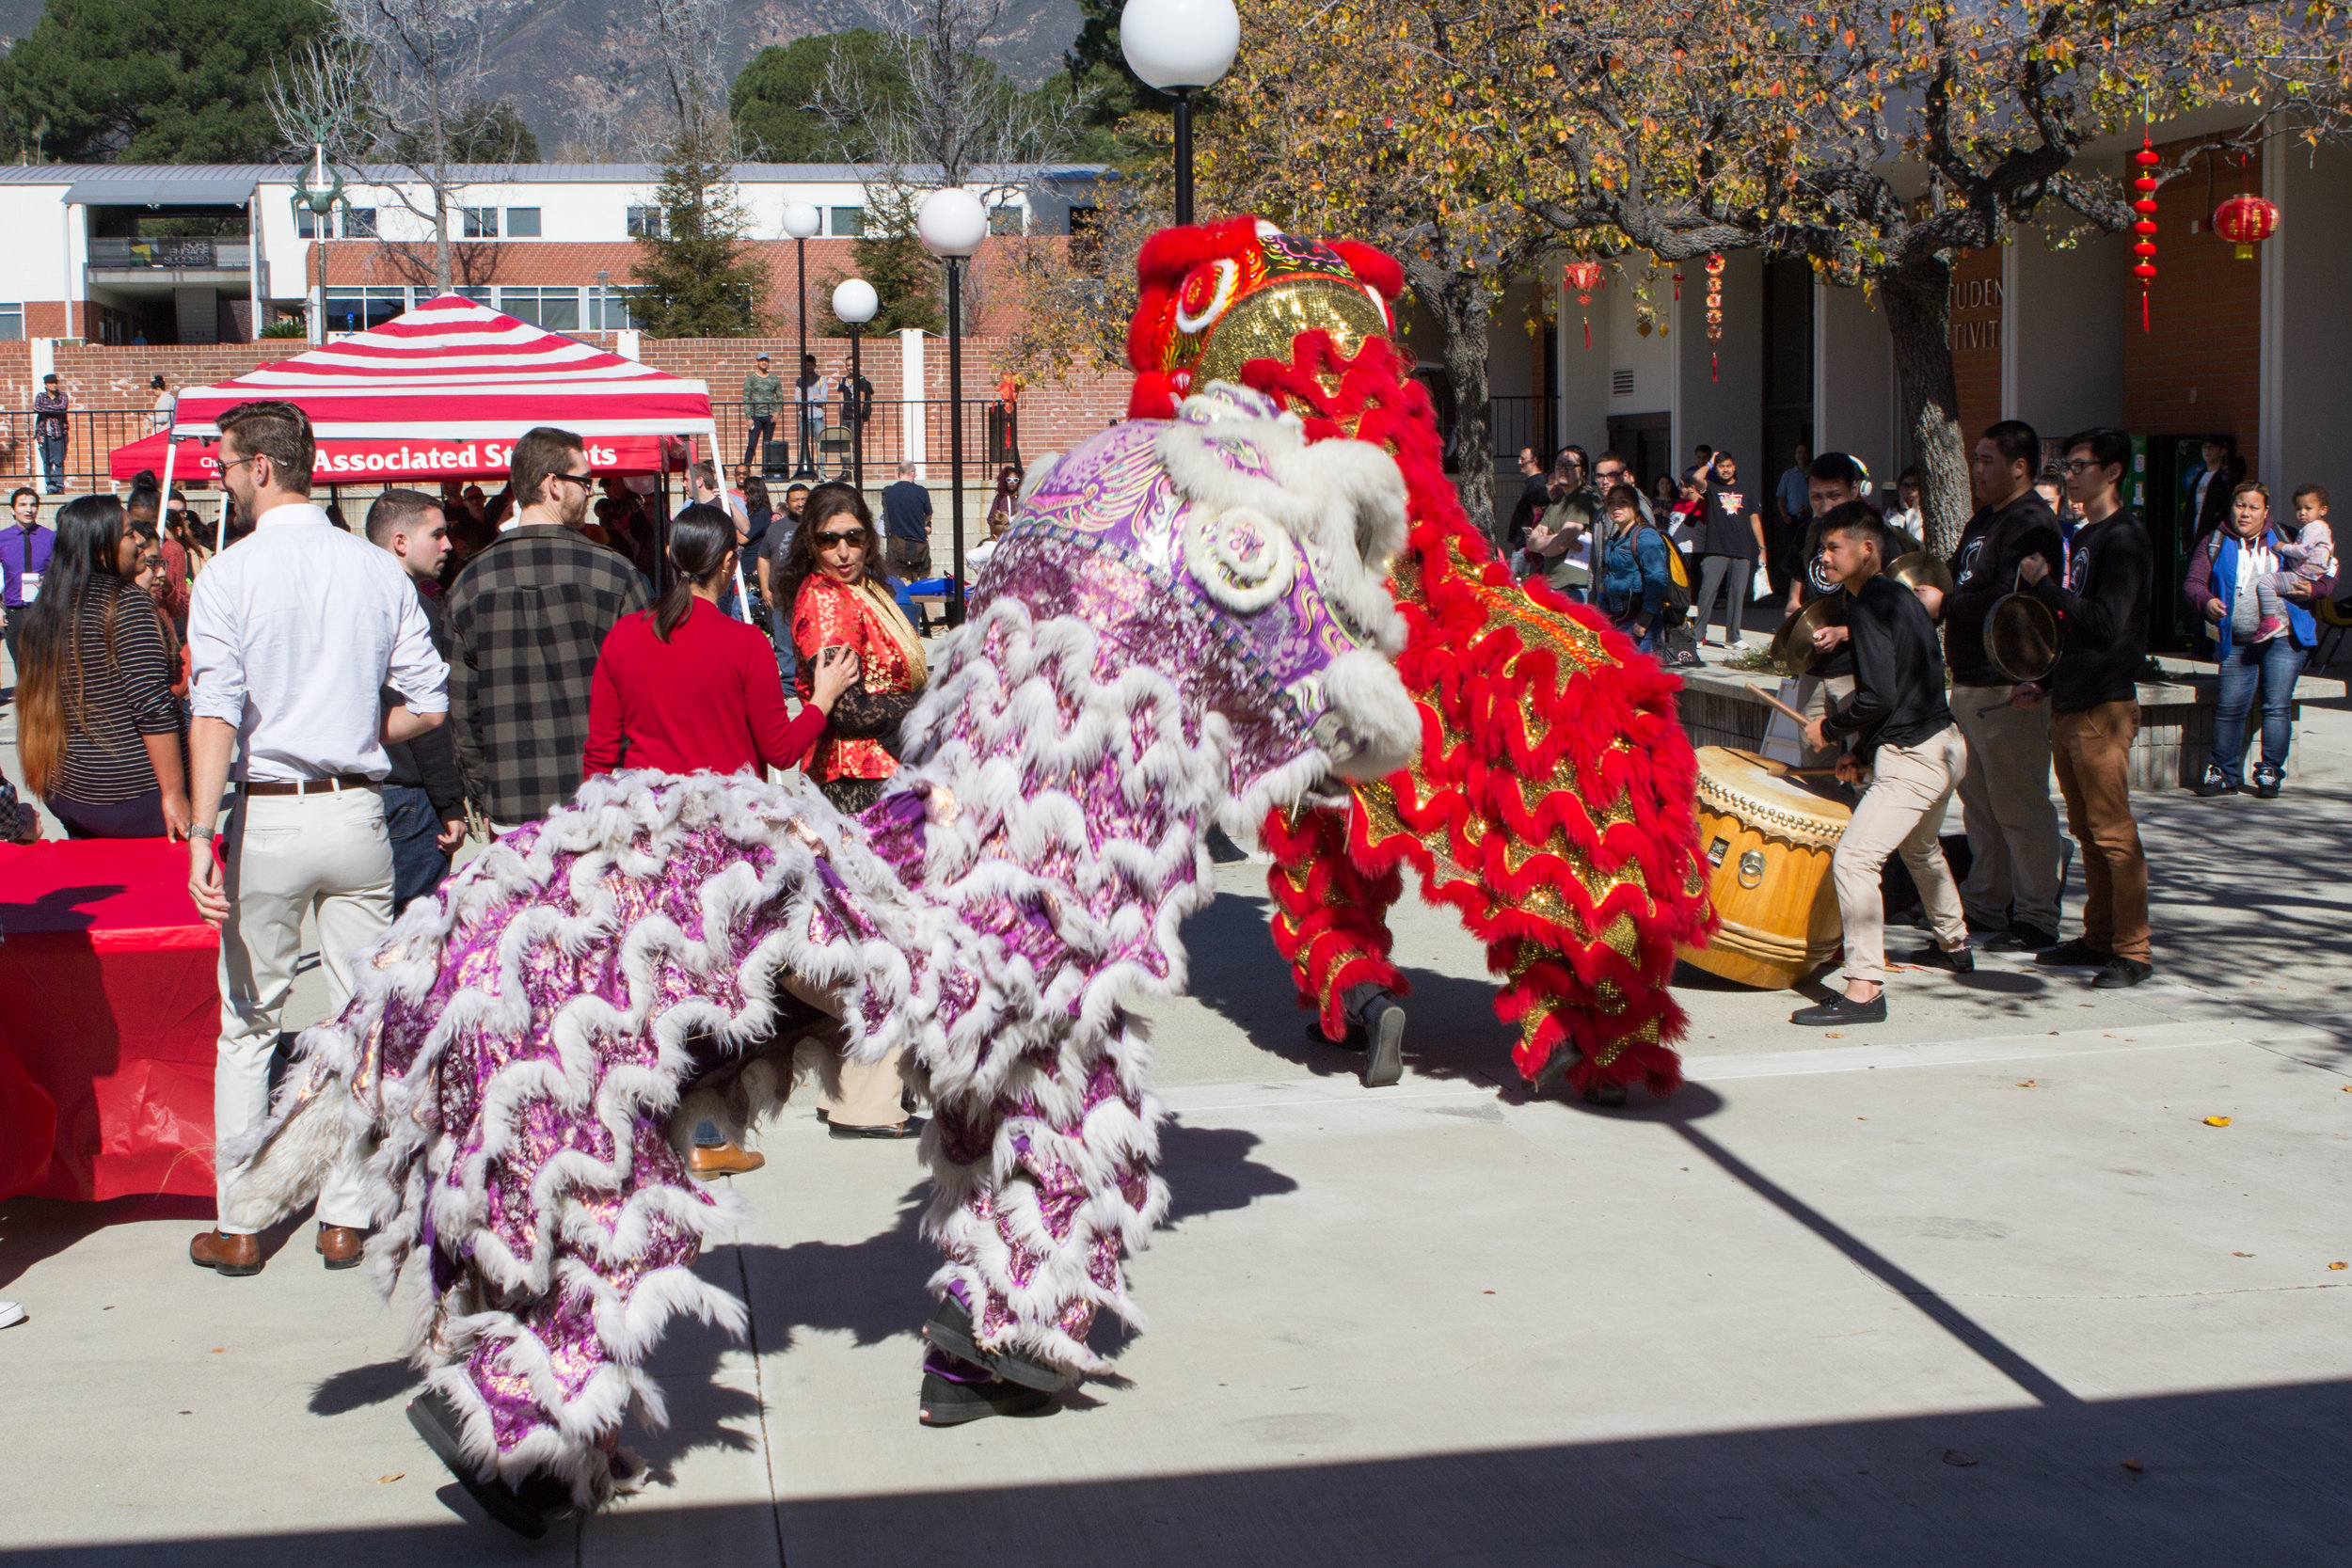 Lion dancers enter the East Quad while musicians perform accompanying music on   Wednesday, Feb. 1, 2017. Photo by Christopher Santee.